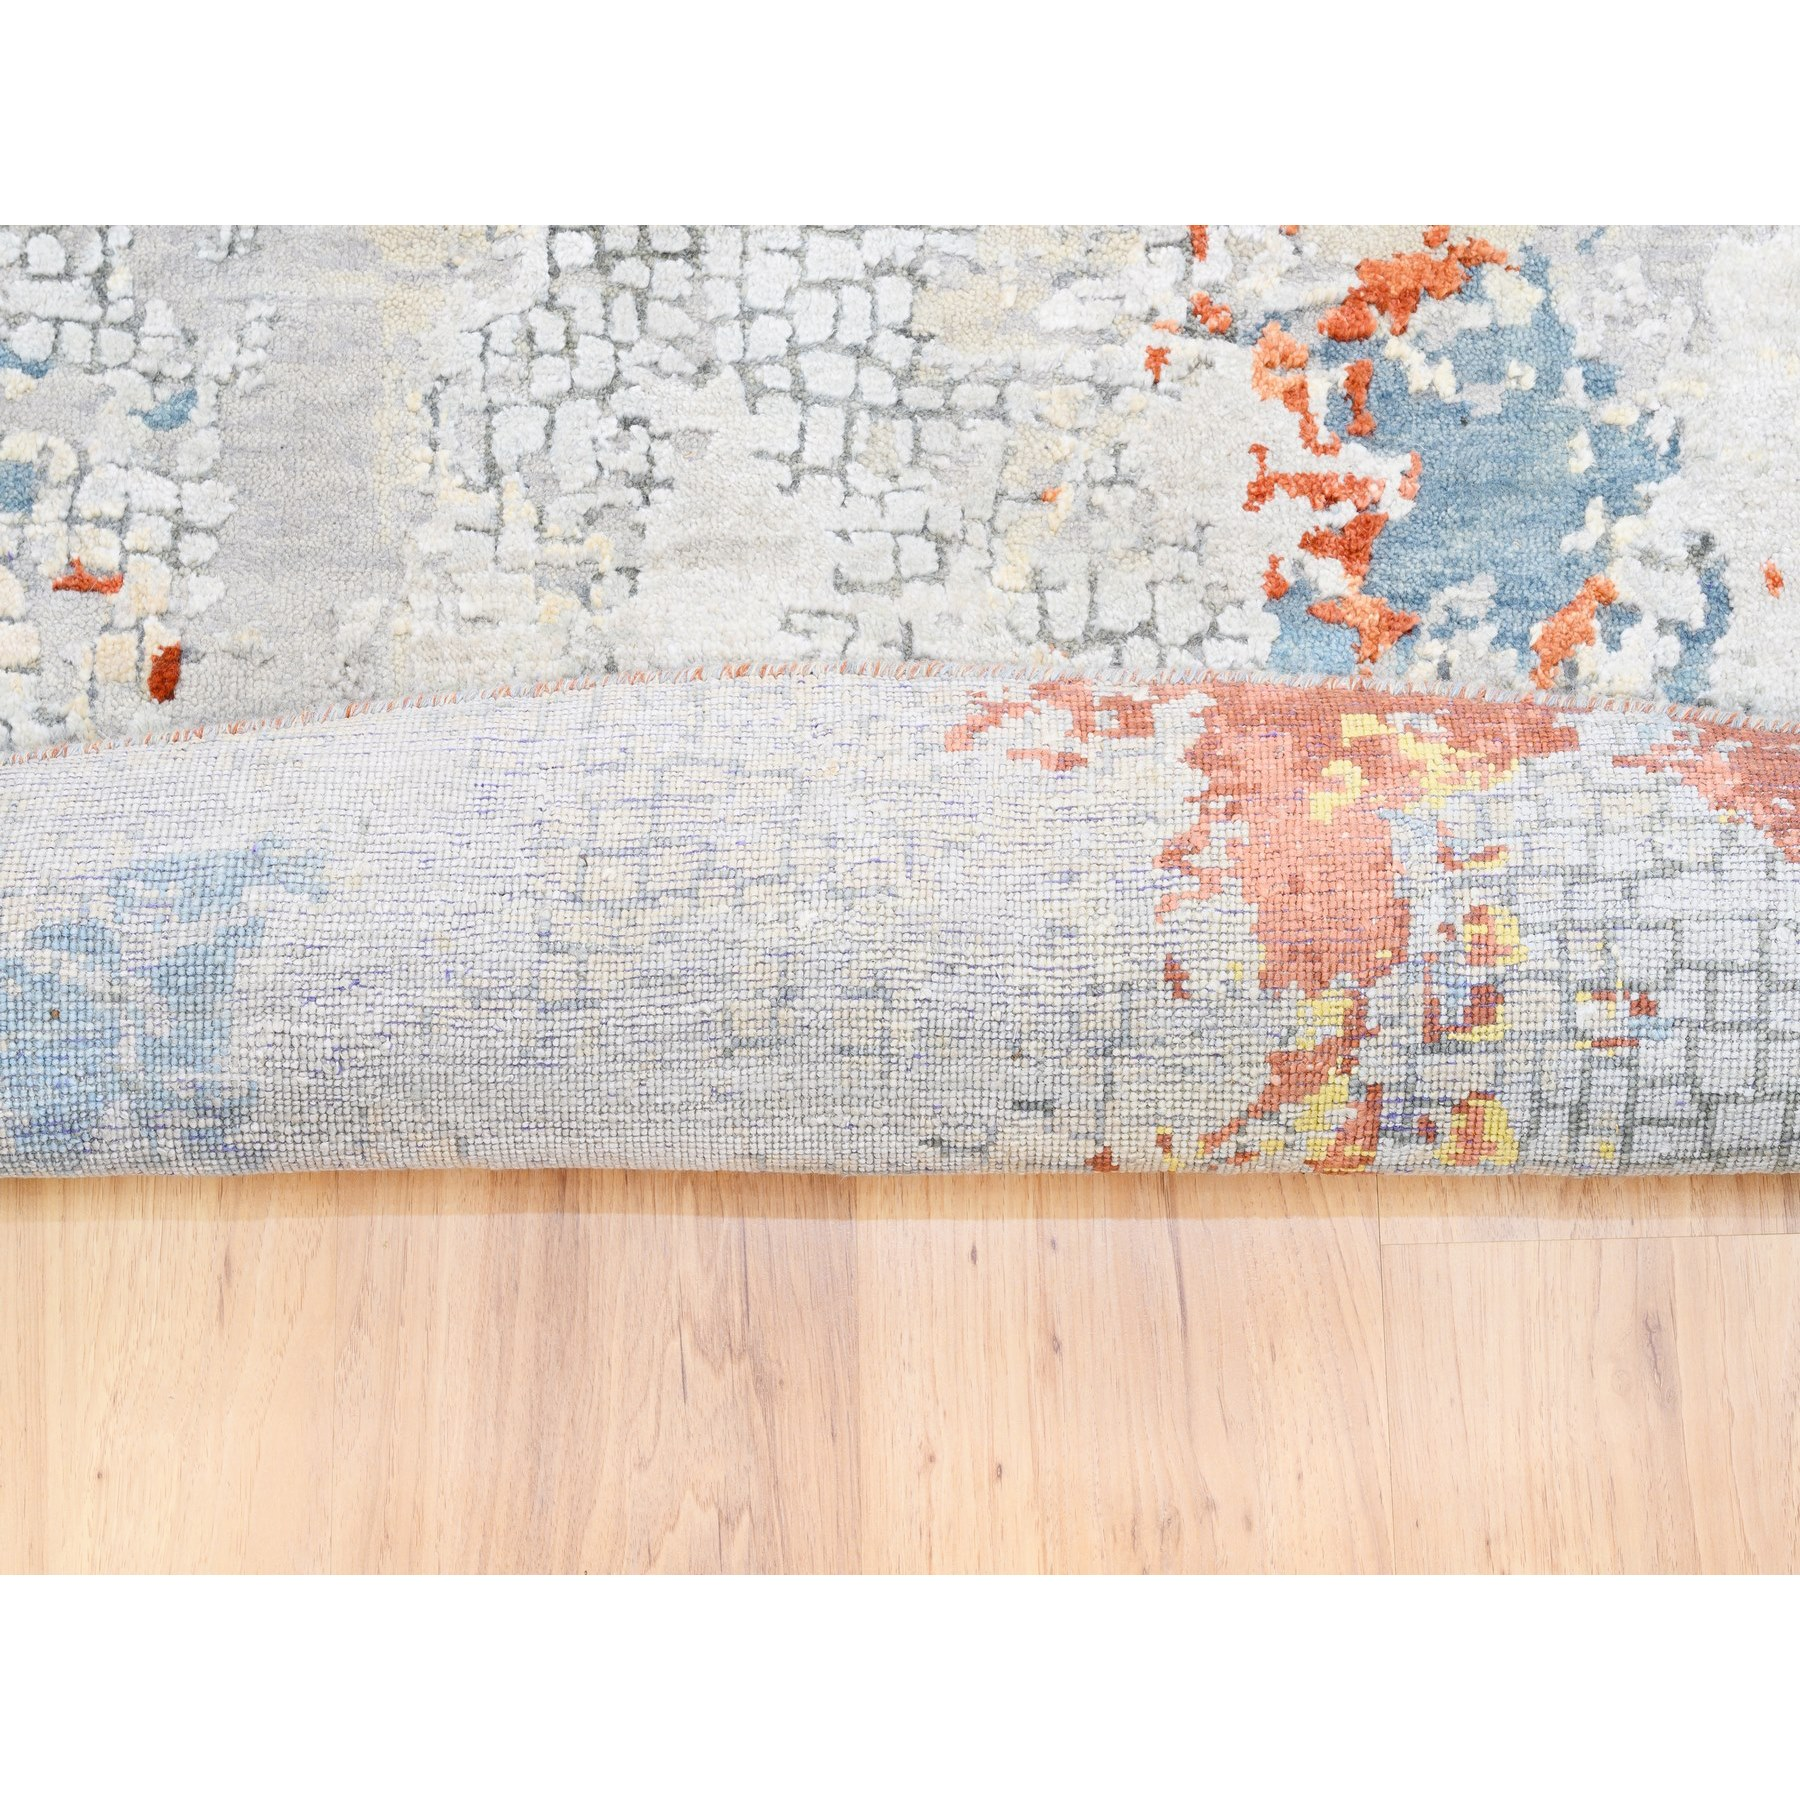 """11'9""""x11'9"""" Wool Abstract with Fire Mosaic Design Hand Knotted Round Rug"""